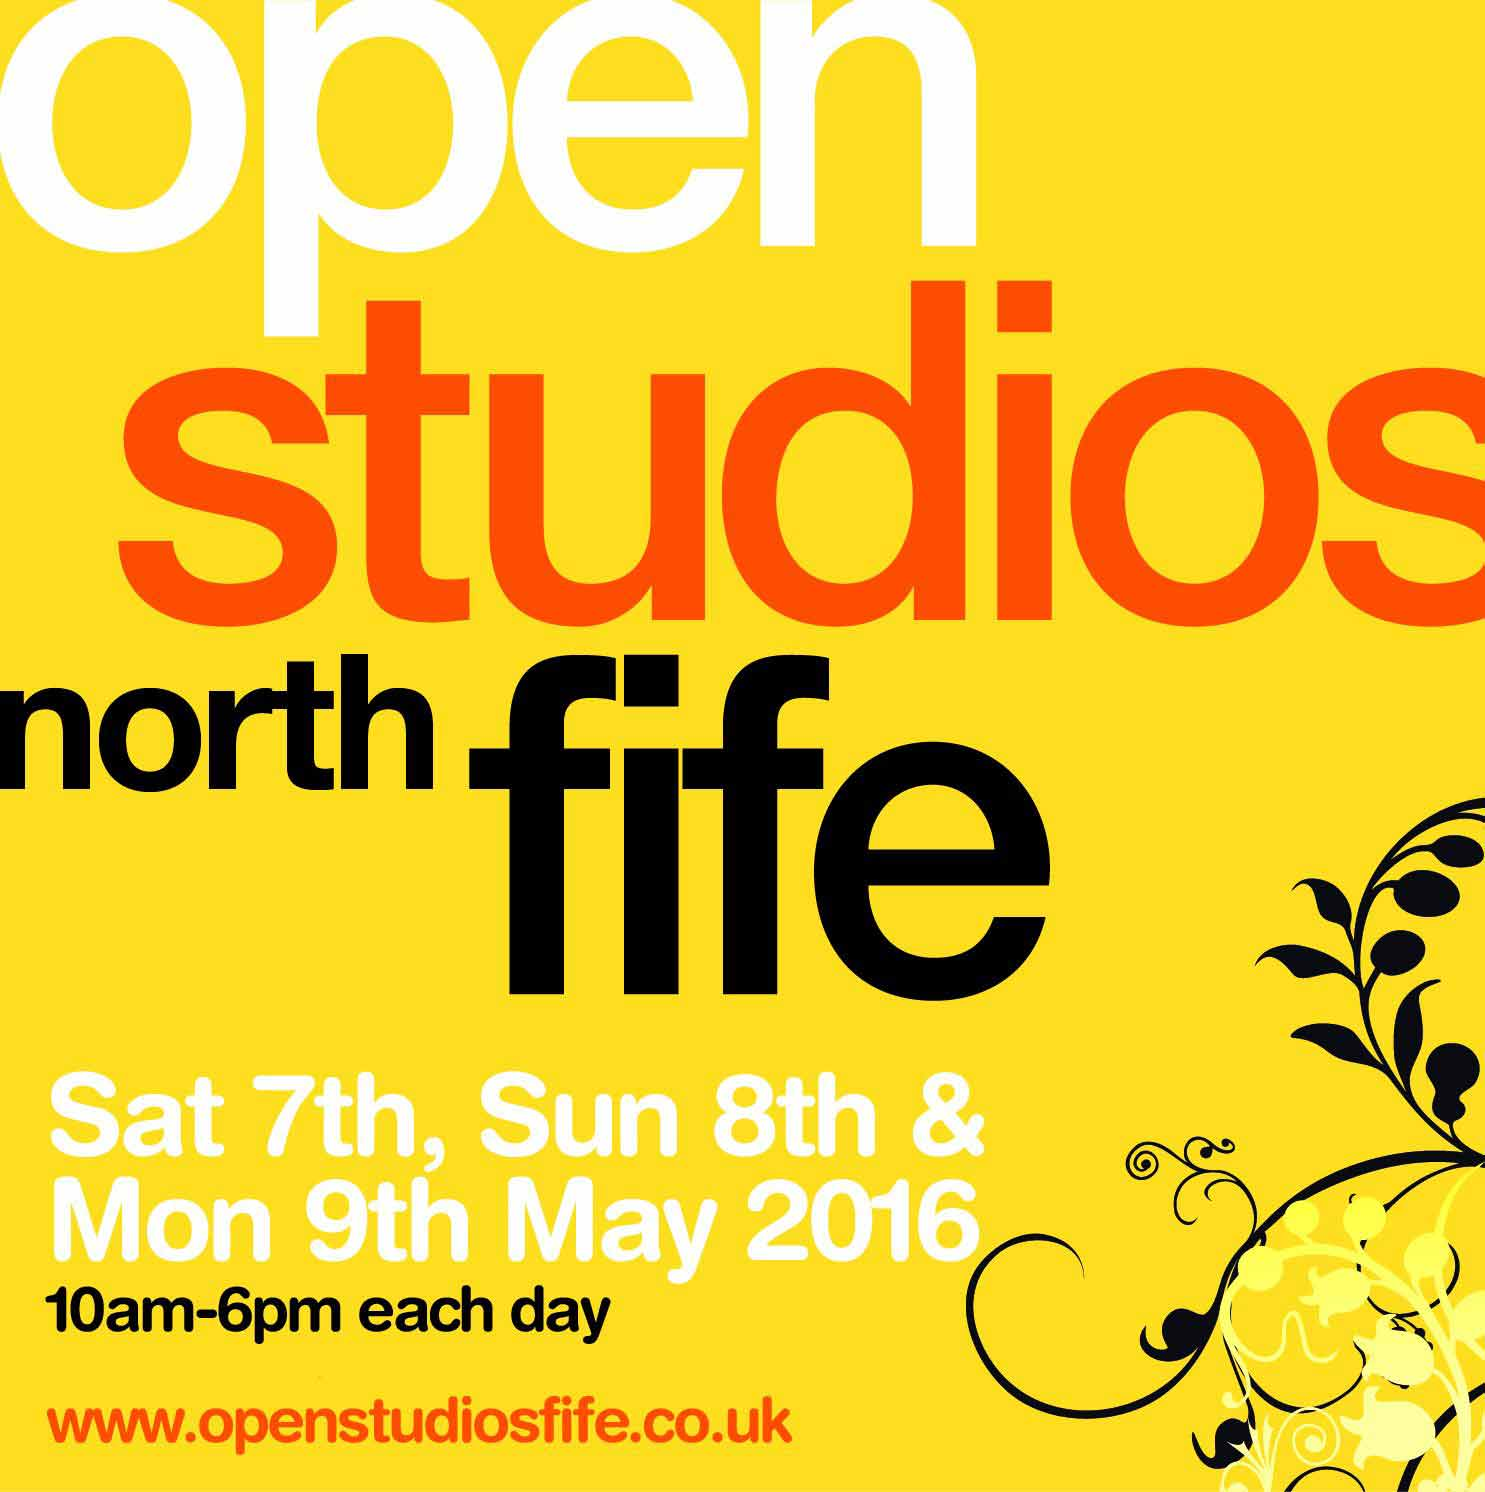 Kirsty Lorenz, North Fife Open Studios